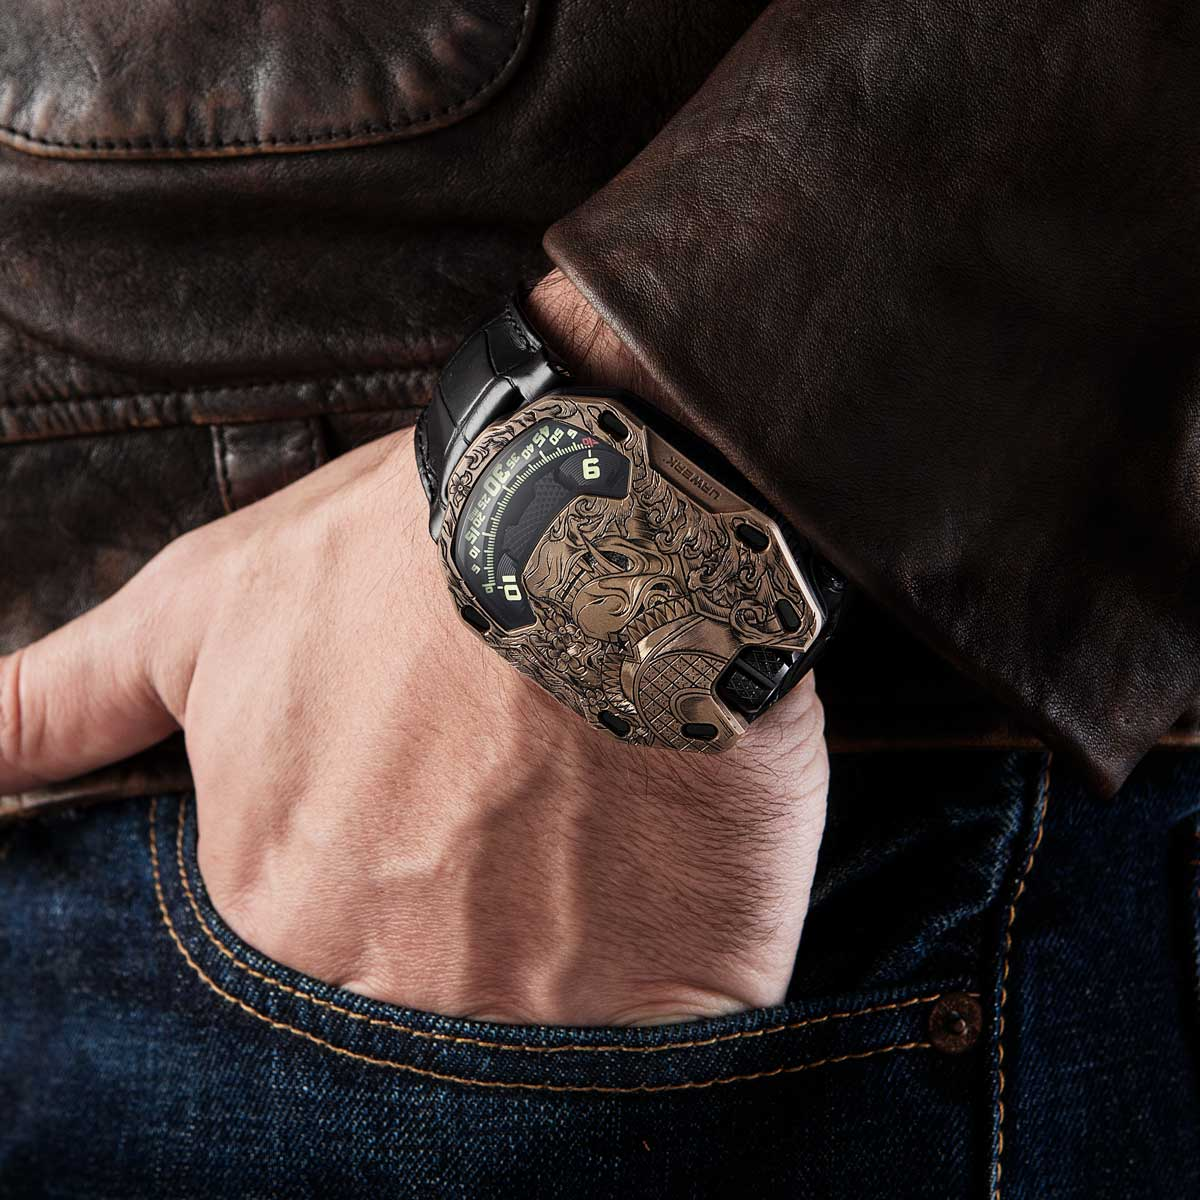 The URWERK x Revolution UR 105 Bronze Samurai on the wrist (Image © Revolution)